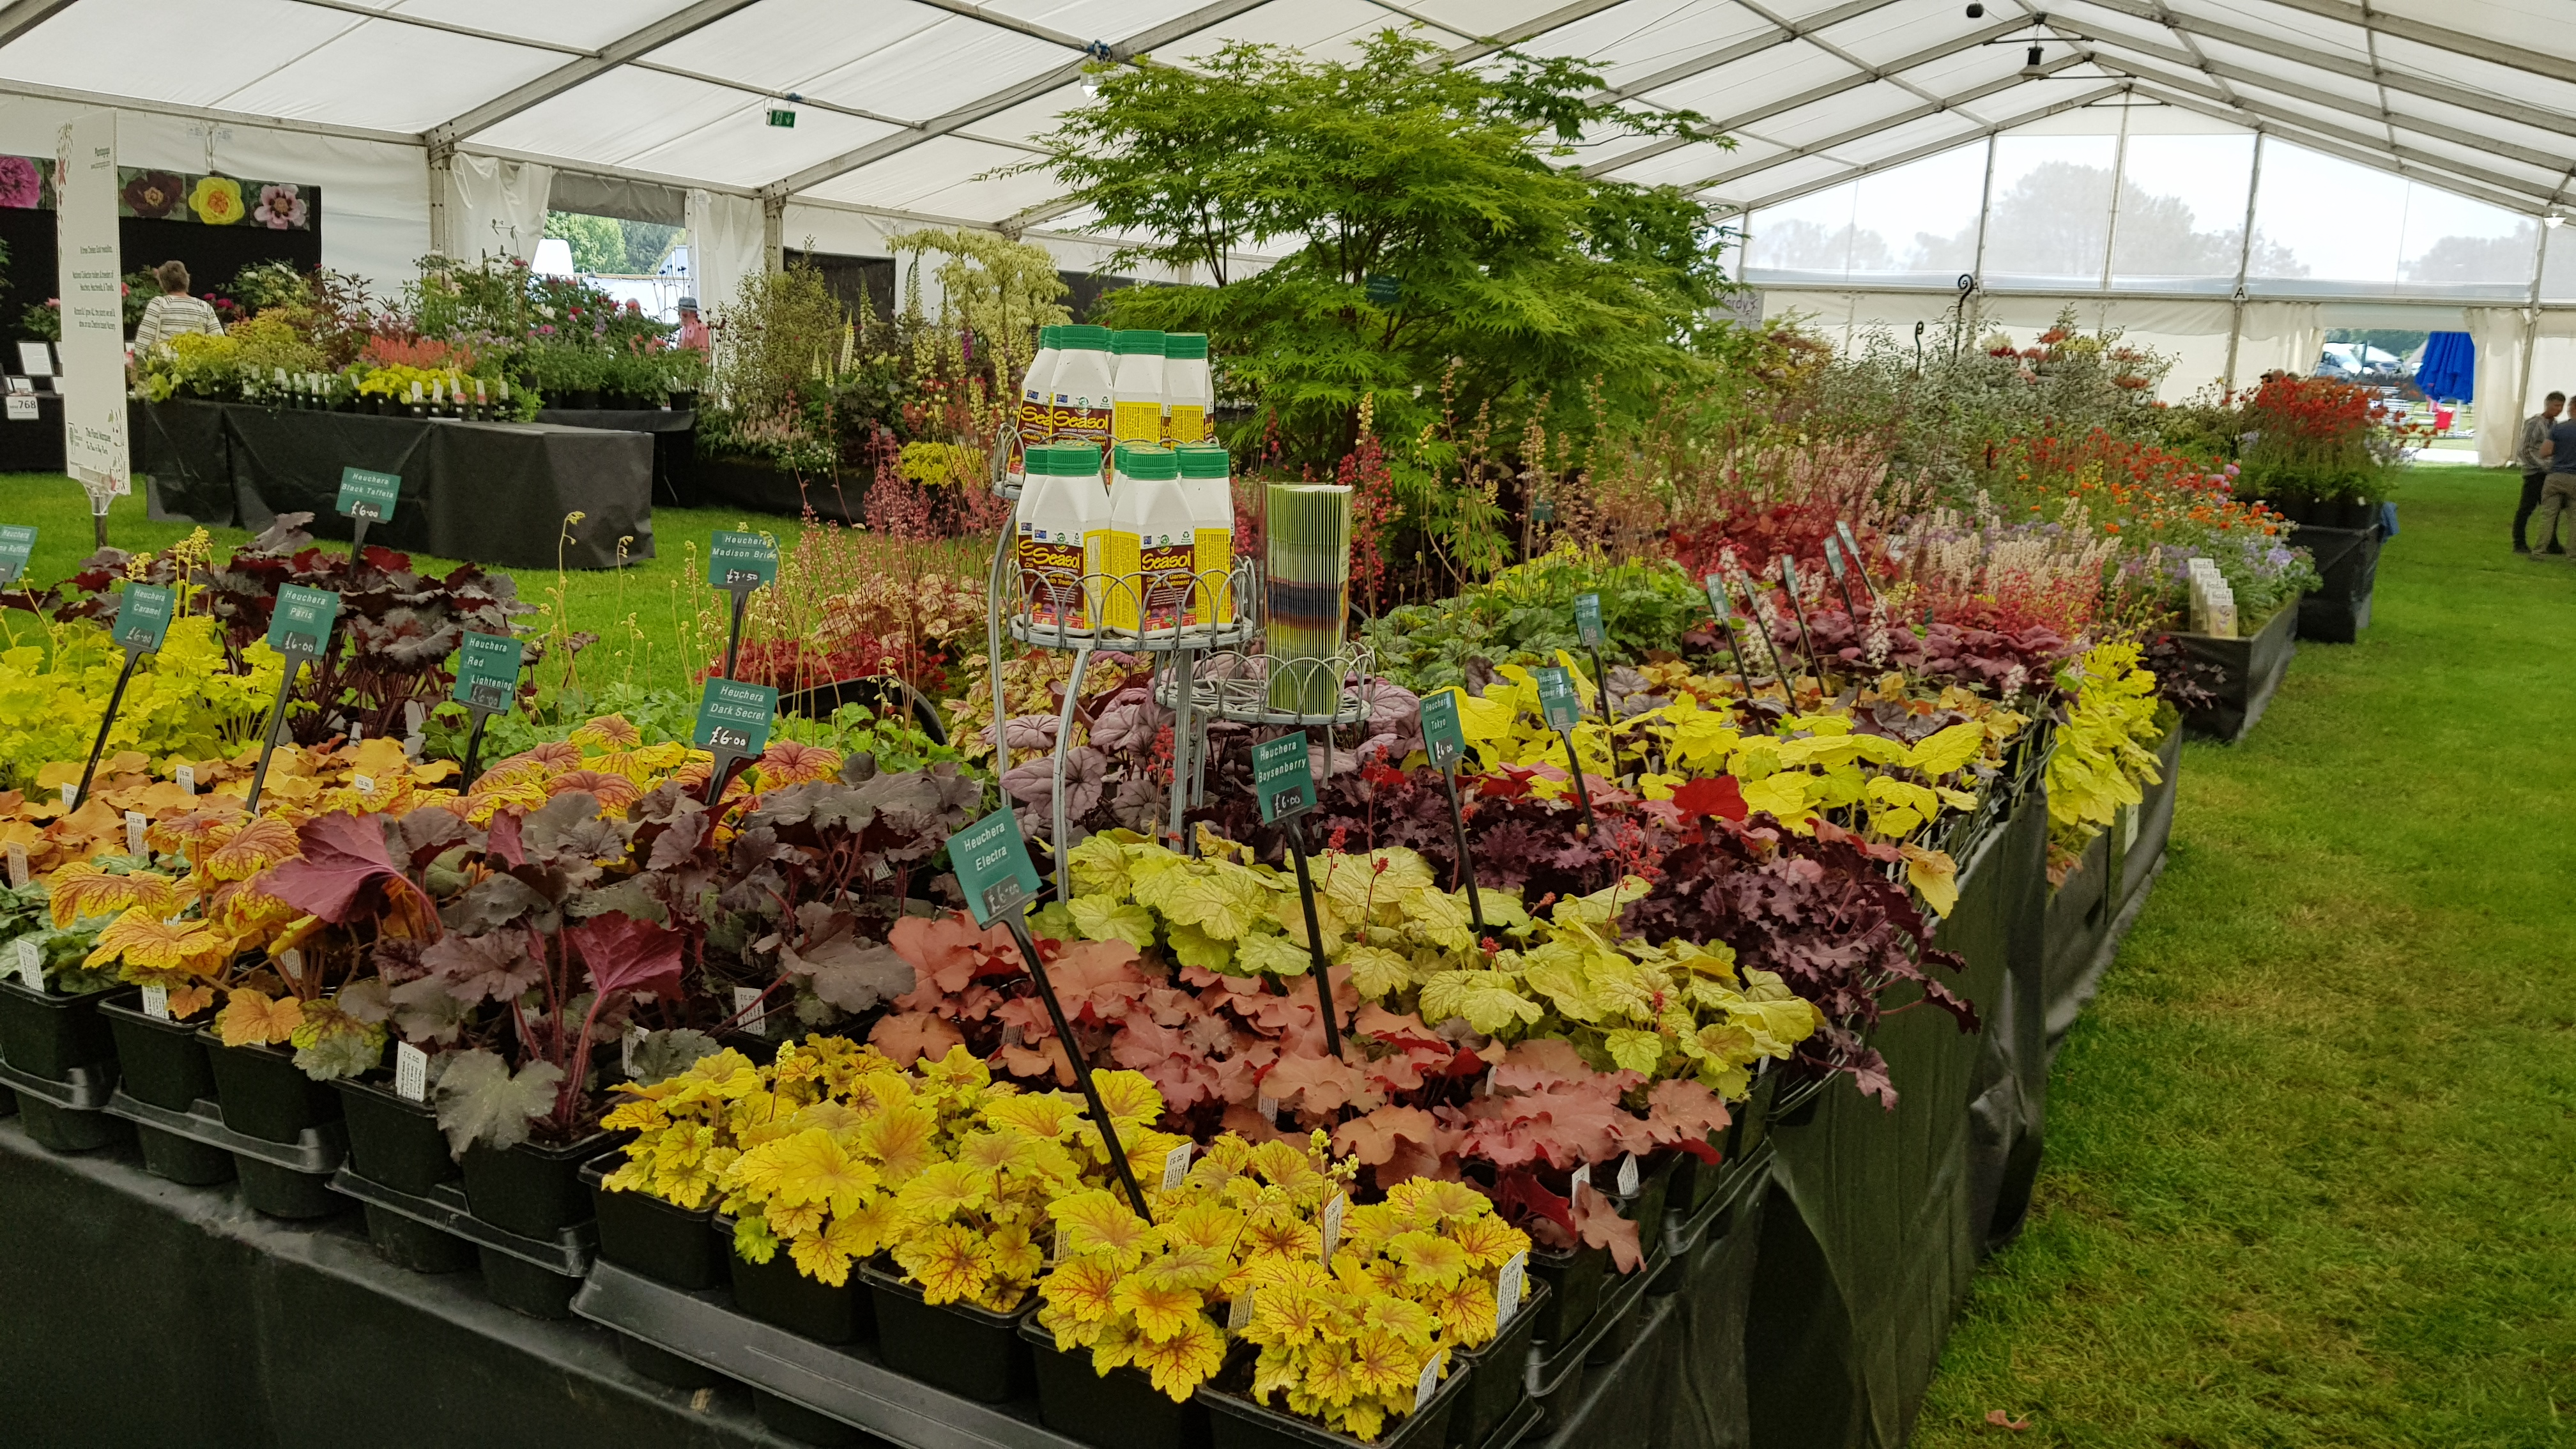 Seductive Malvern Spring Show  Photos And Getting Ready For Rhs Chelsea  With Gorgeous Thanks So Much To All Who Supported Us And Bought Plants This Weekend We  Hope They Make Great Additions To Your Gardens With Breathtaking Public Garden Also Nj Gardens In Addition Kew Gardens Lights And Lotus Garden Apartments As Well As Used Garden Shed For Sale Additionally Daisy Garden From Plantagogocom With   Gorgeous Malvern Spring Show  Photos And Getting Ready For Rhs Chelsea  With Breathtaking Thanks So Much To All Who Supported Us And Bought Plants This Weekend We  Hope They Make Great Additions To Your Gardens And Seductive Public Garden Also Nj Gardens In Addition Kew Gardens Lights From Plantagogocom